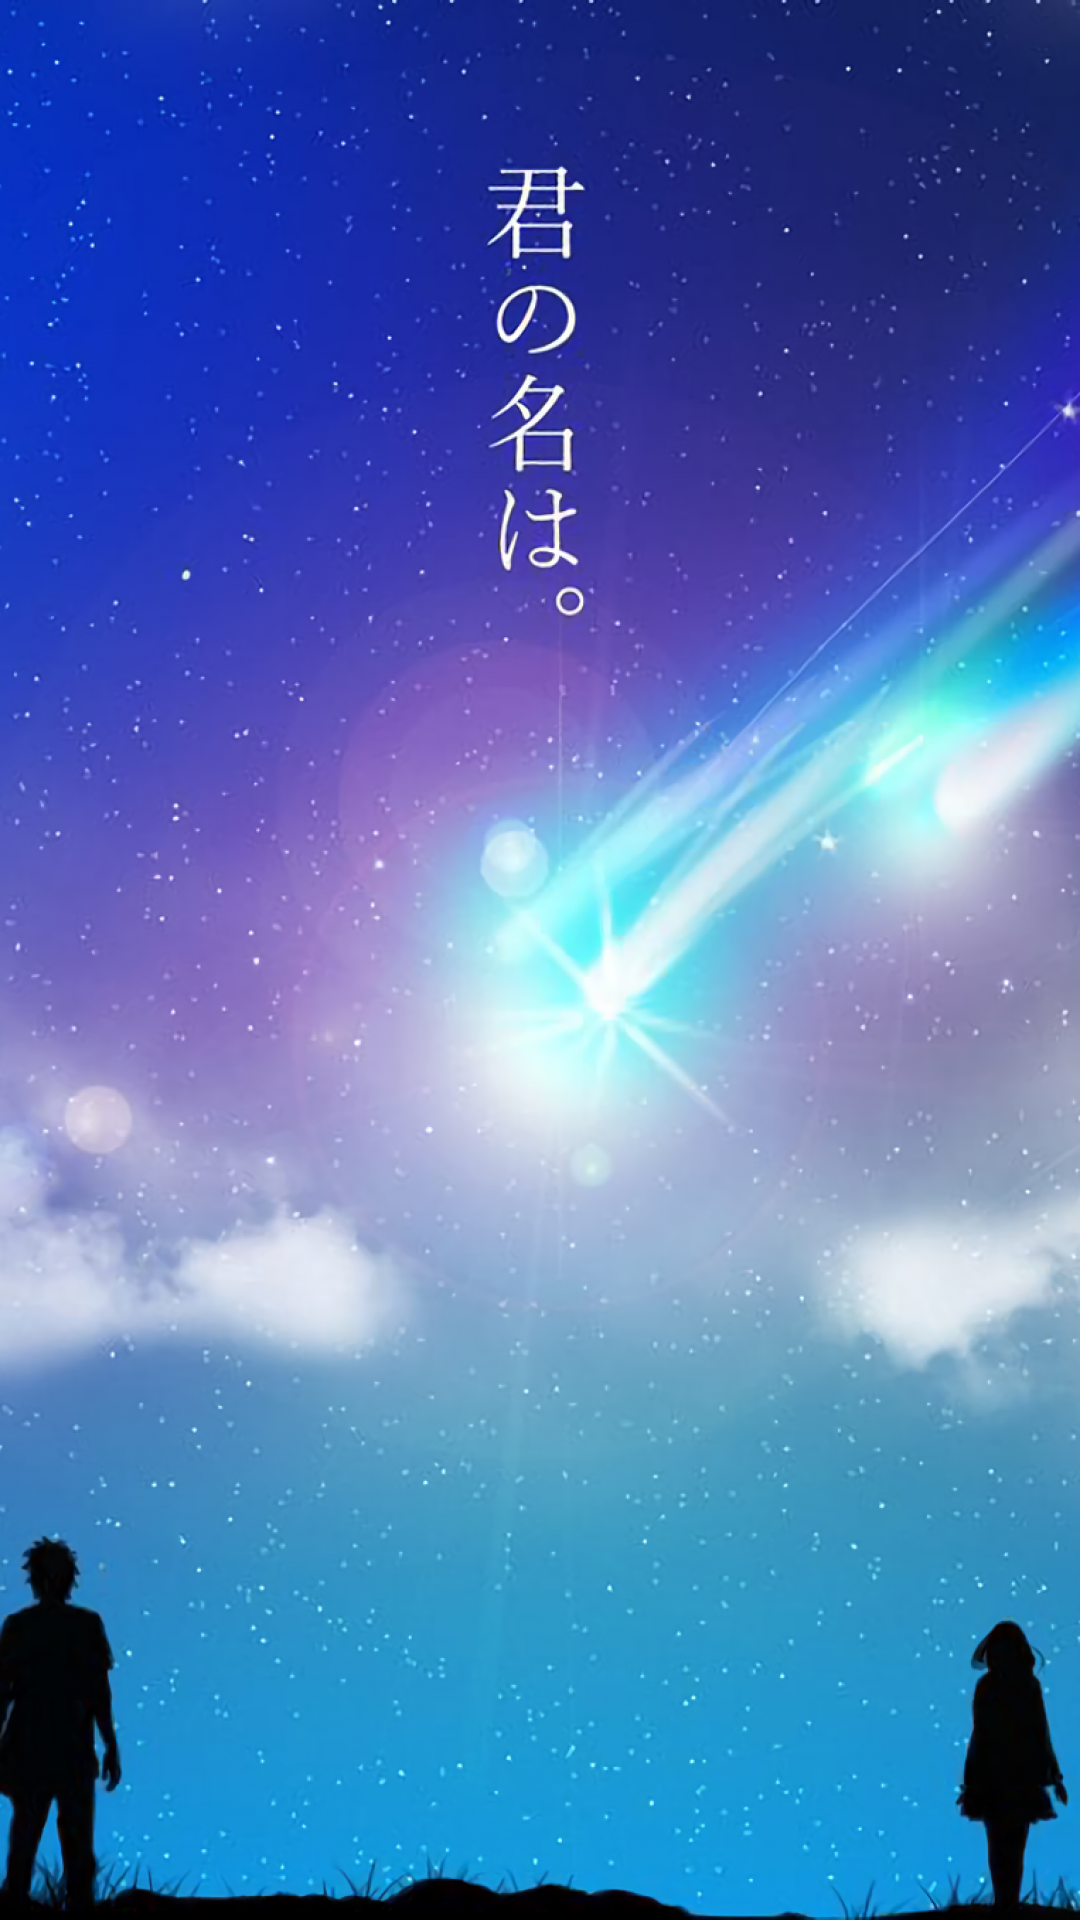 Your Your Name Anime Wallpaper Phone 33372 Hd Wallpaper Backgrounds Download